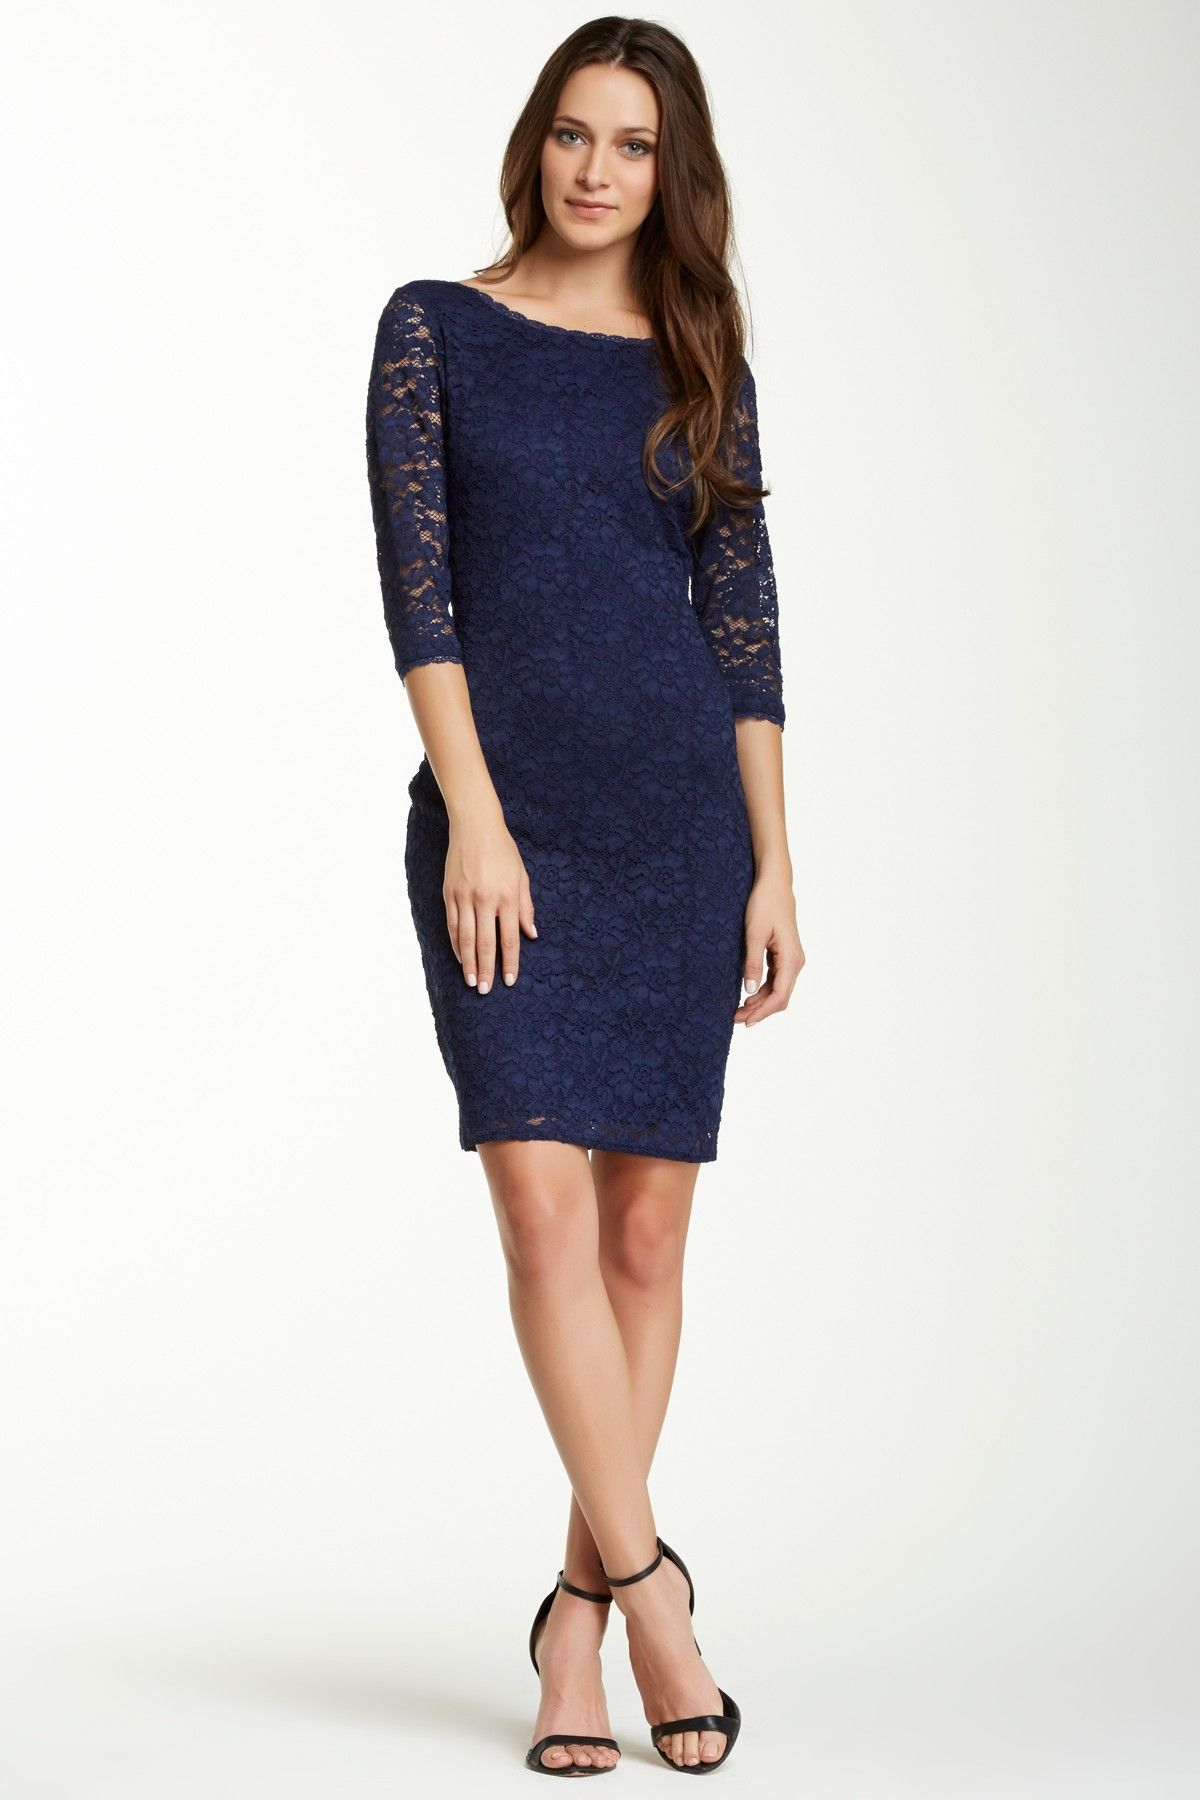 Laundry By Shelli Segal Lace Bodycon Dress Navy lace Lace